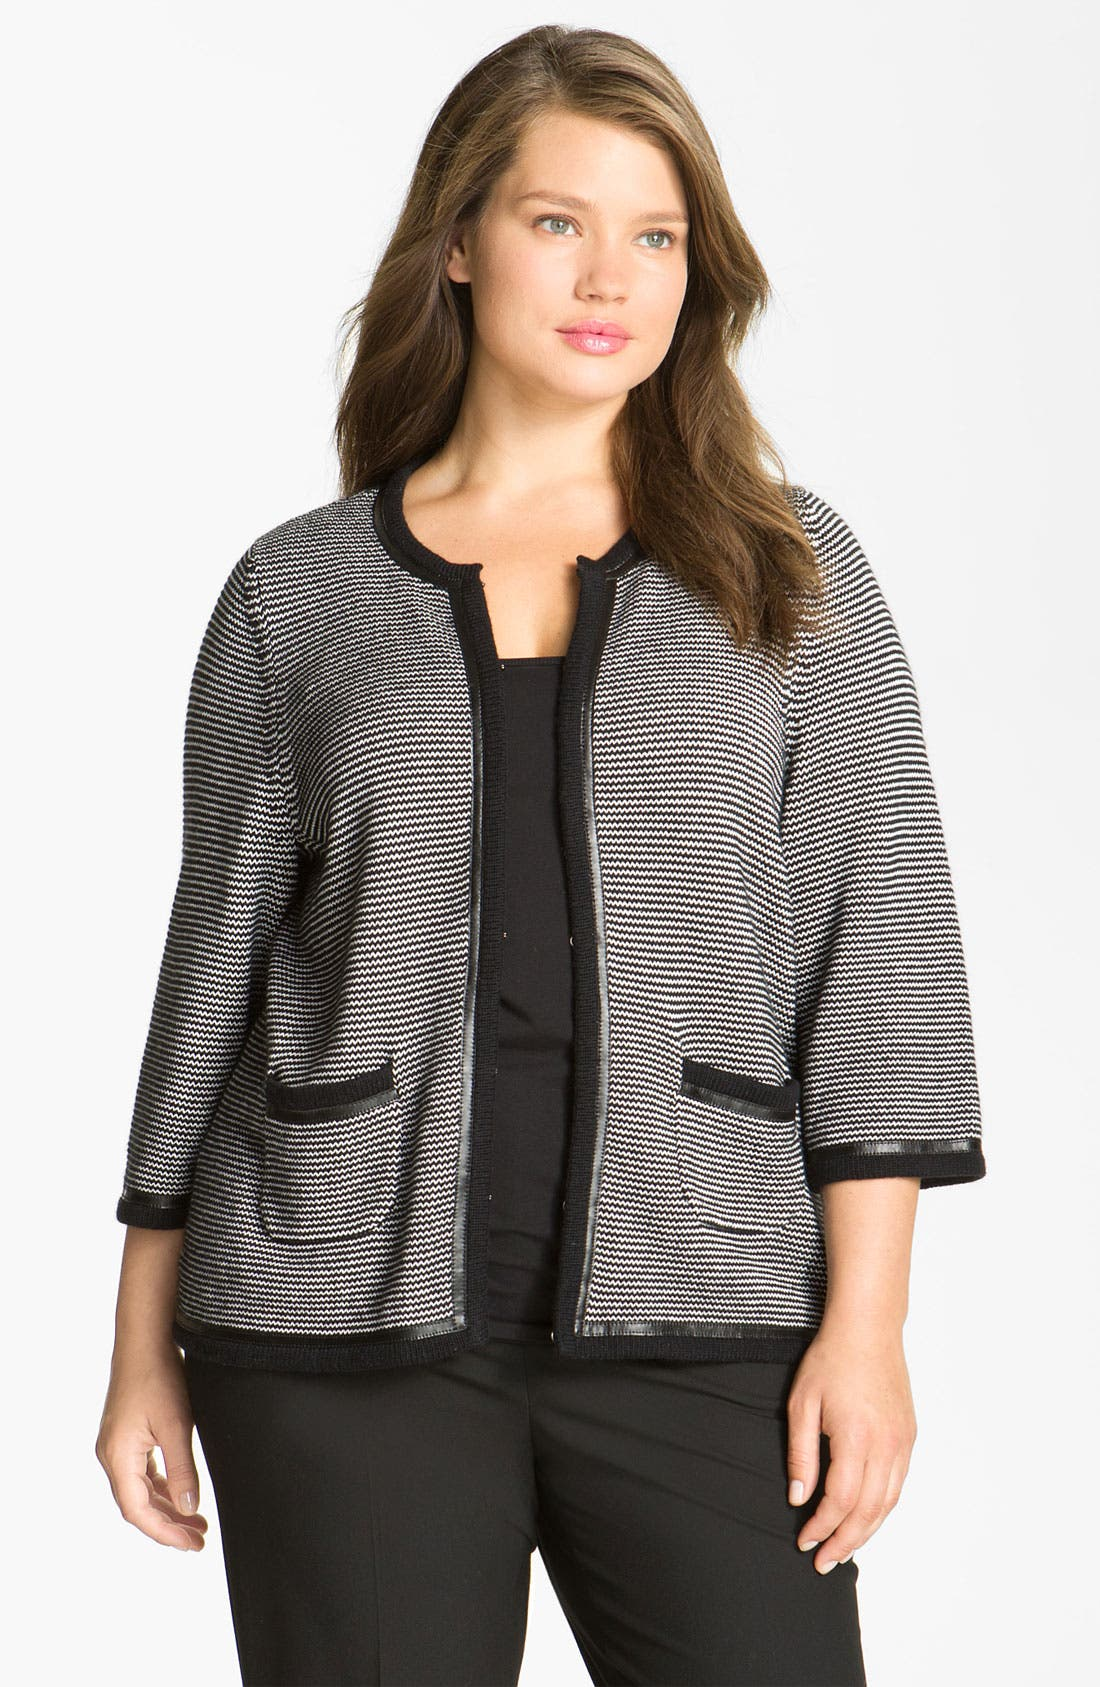 Alternate Image 1 Selected - Sejour Leather Trim Sweater Jacket (Plus)